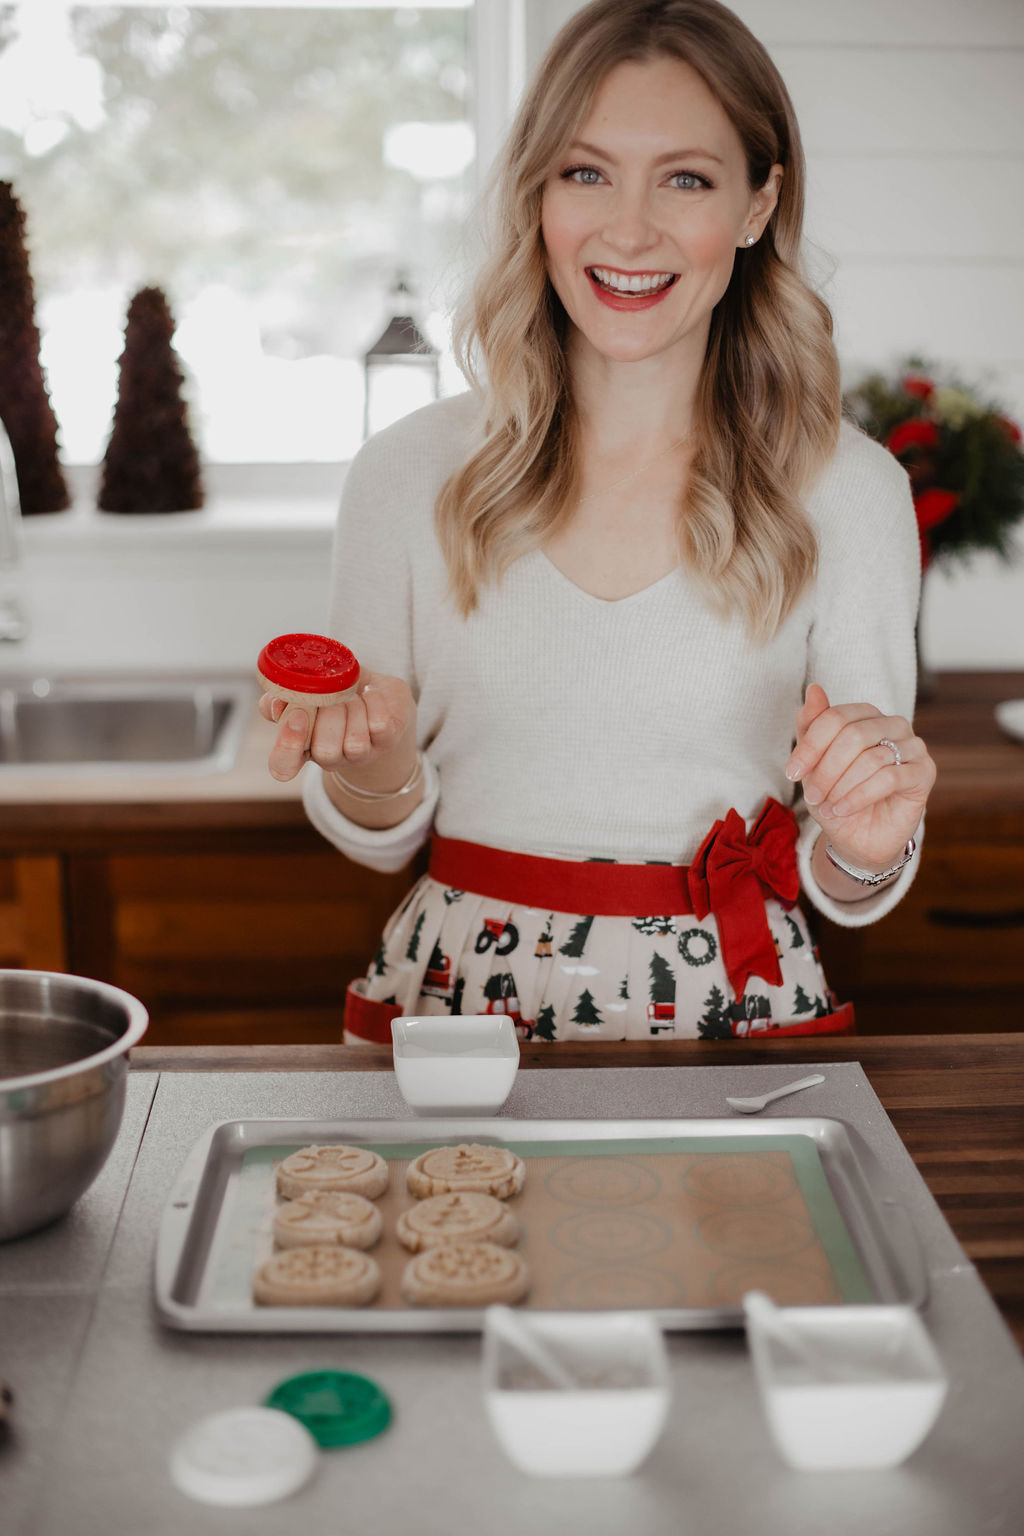 Baking Christmas Cookies Using A Cookie Stamp